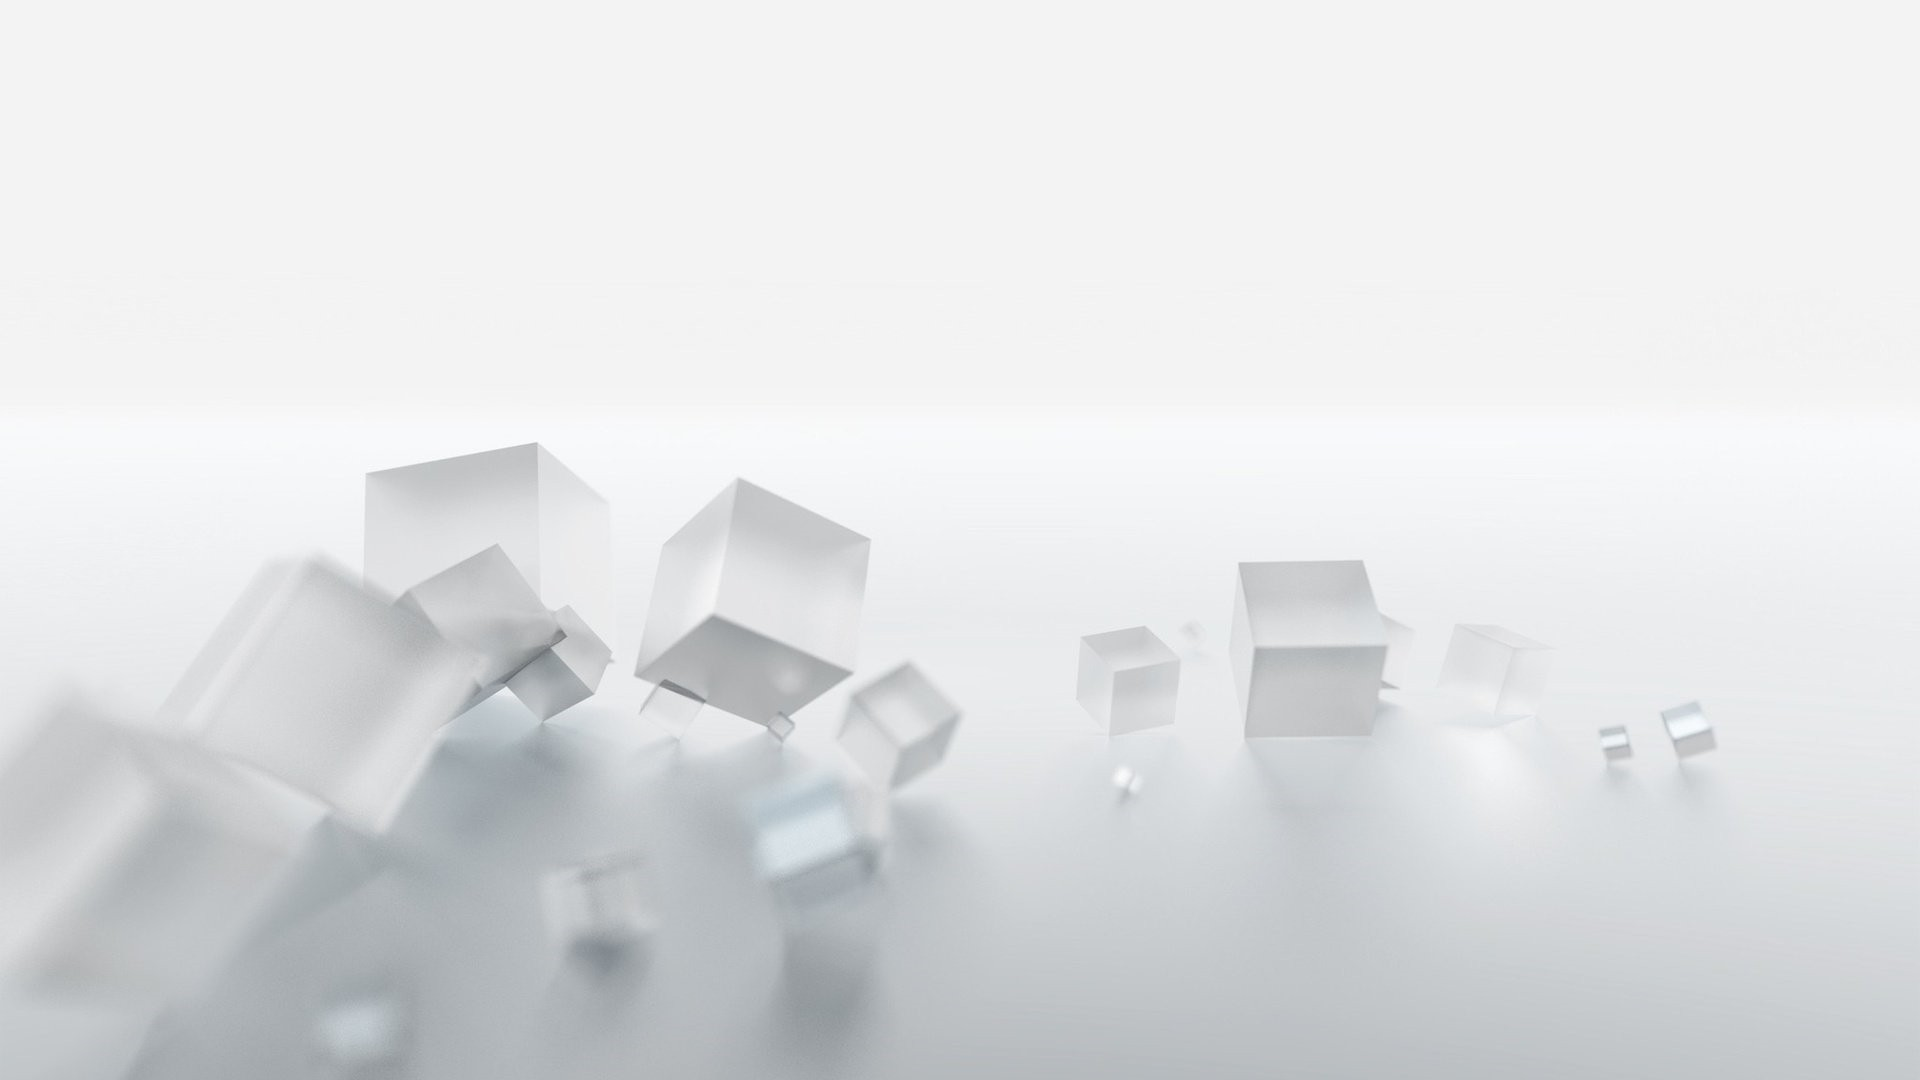 Solid White Wallpaper and Background